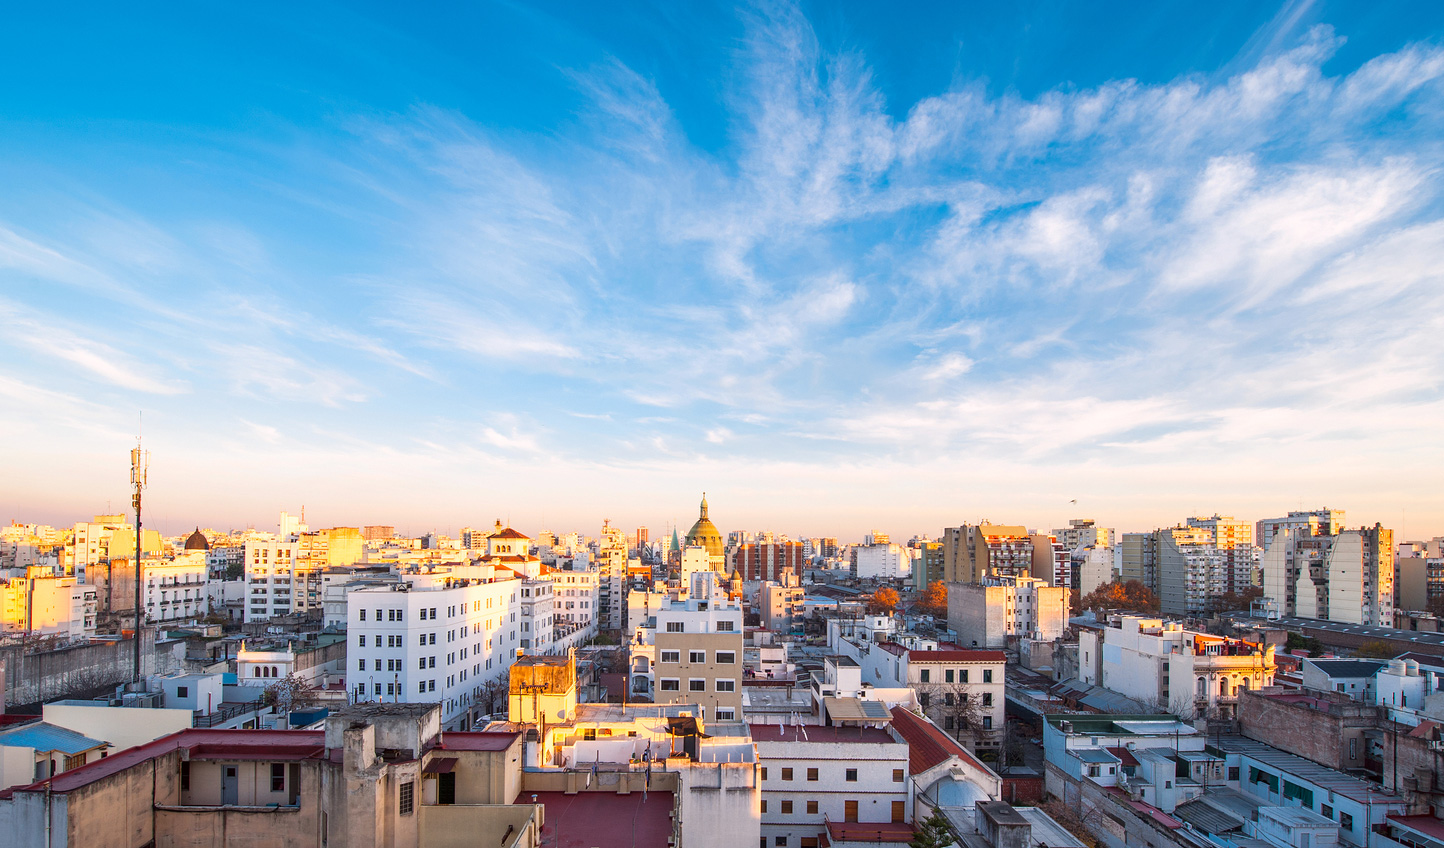 Spend some time taking in the city sights of Buenos Aires